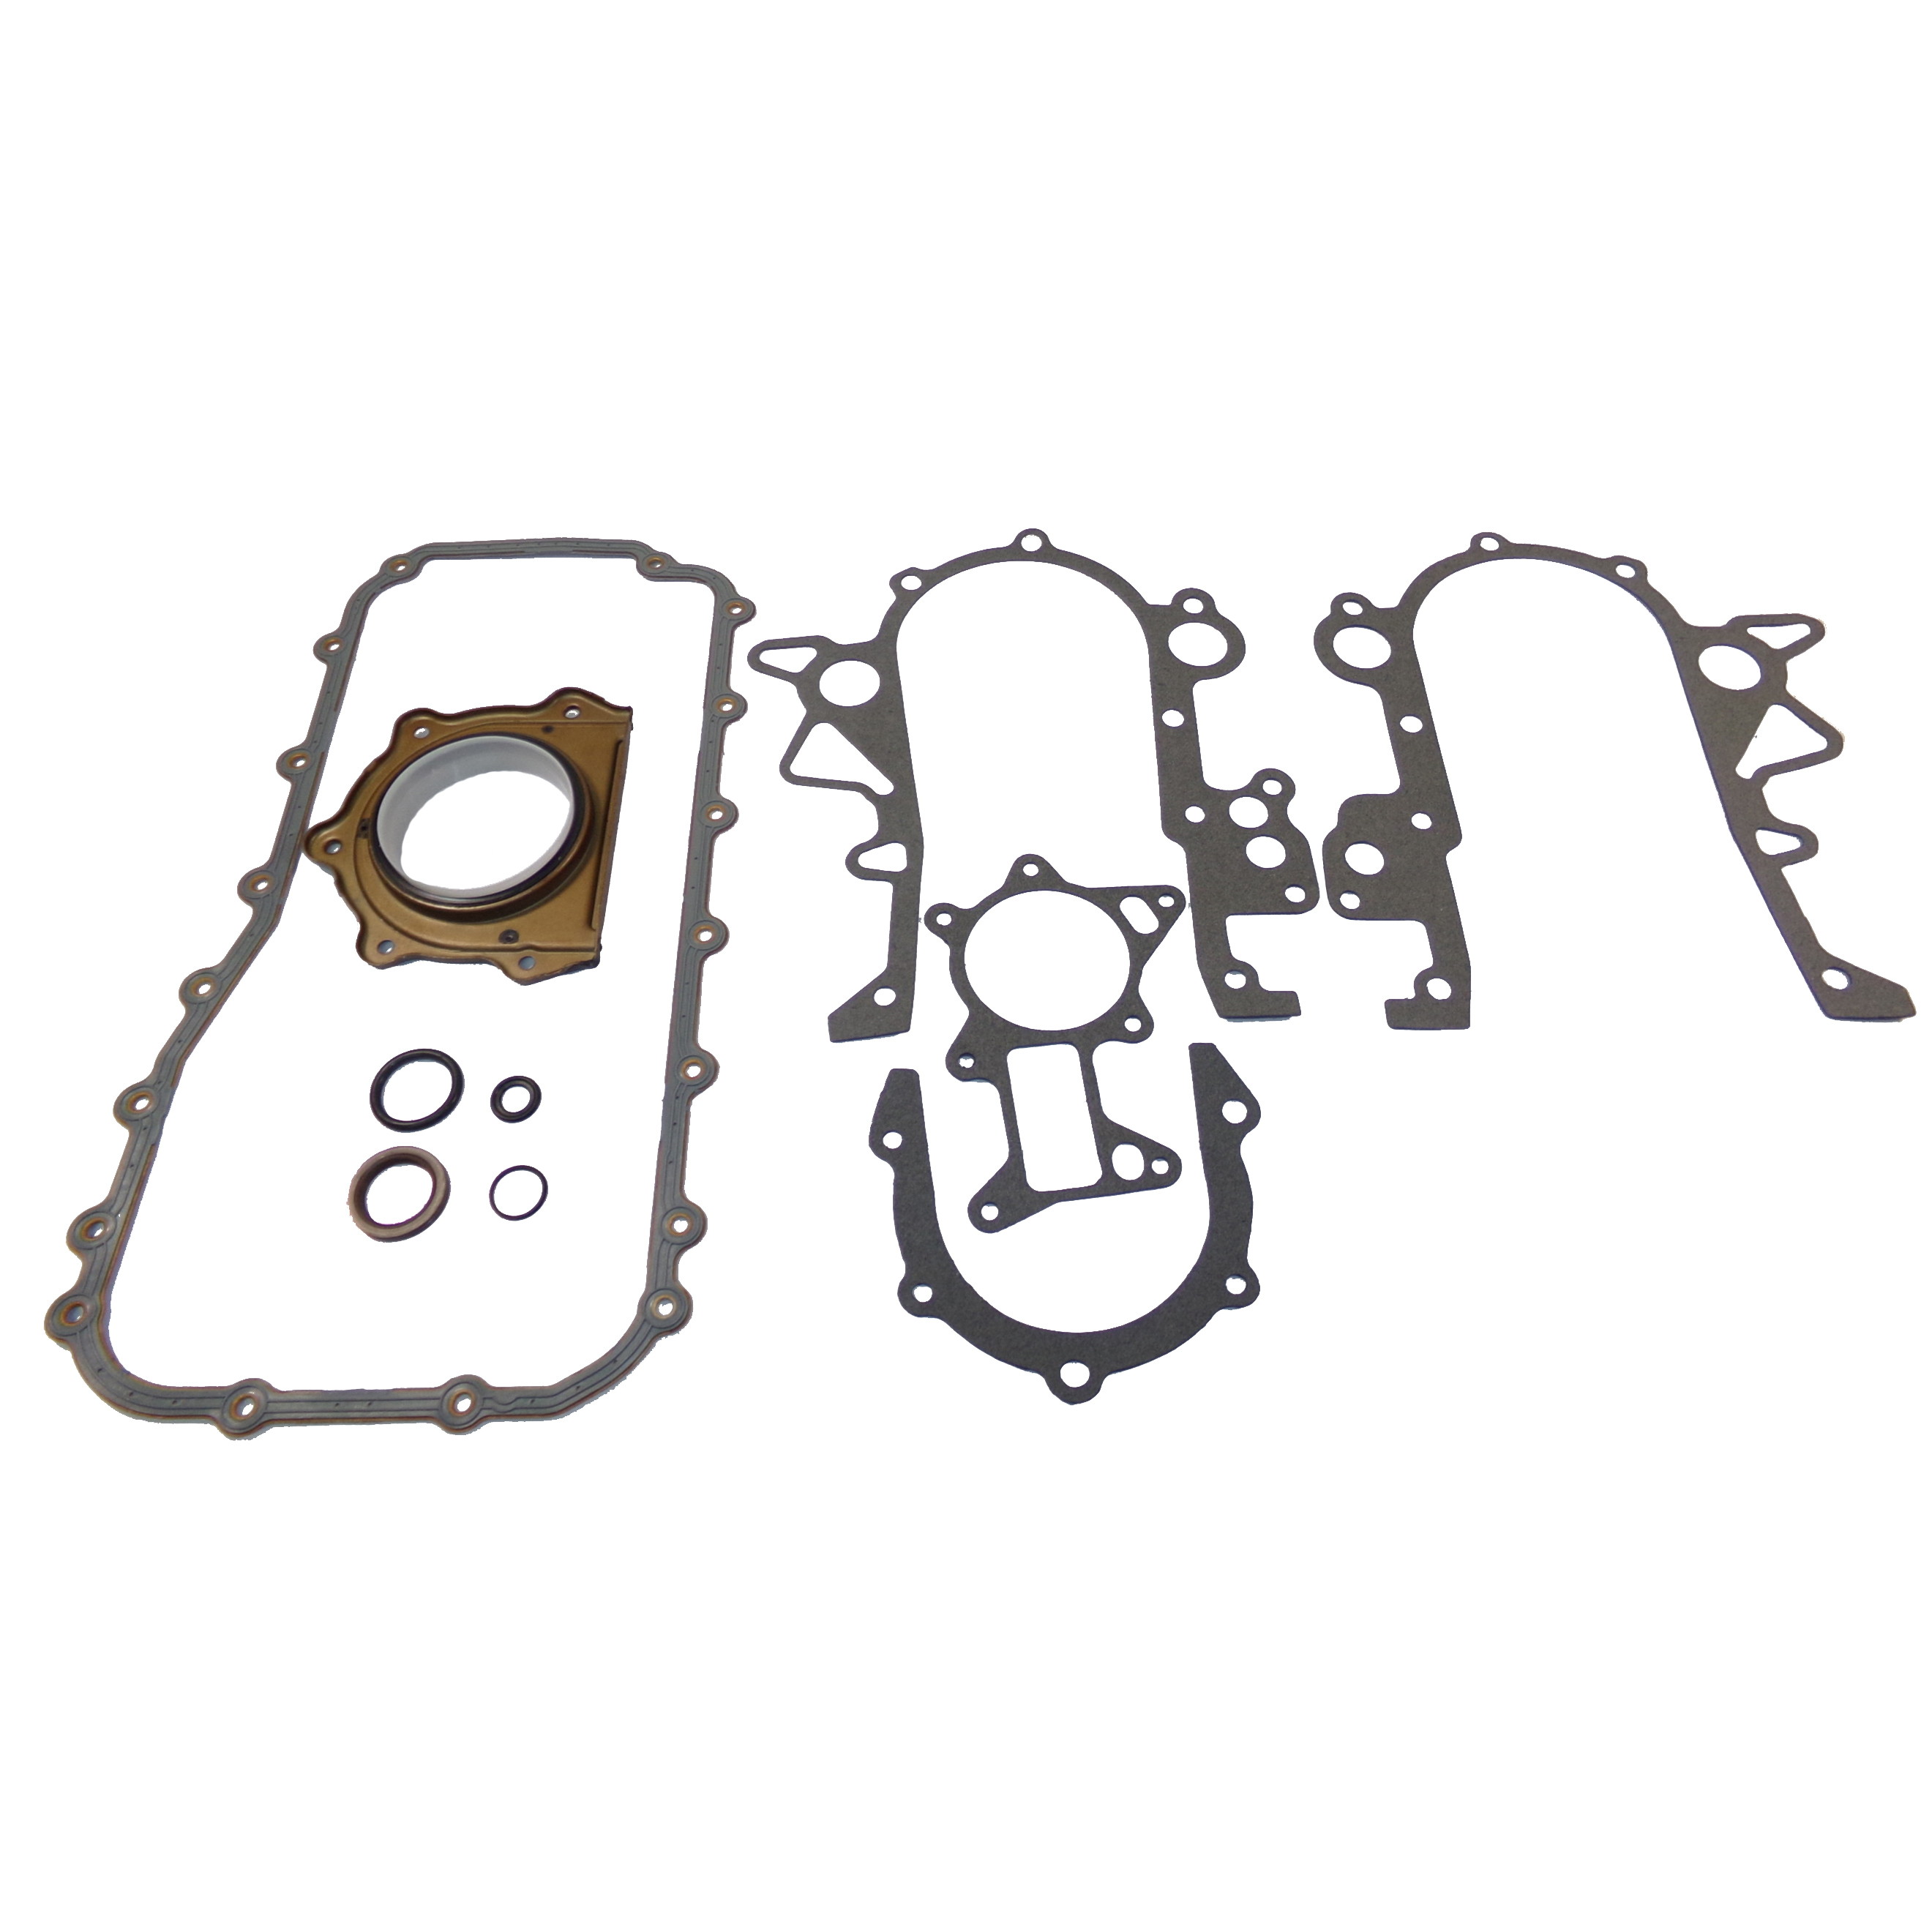 Dnj Lower Gasket Set Lgs For 07 11 Jeep V6 3 8l 231